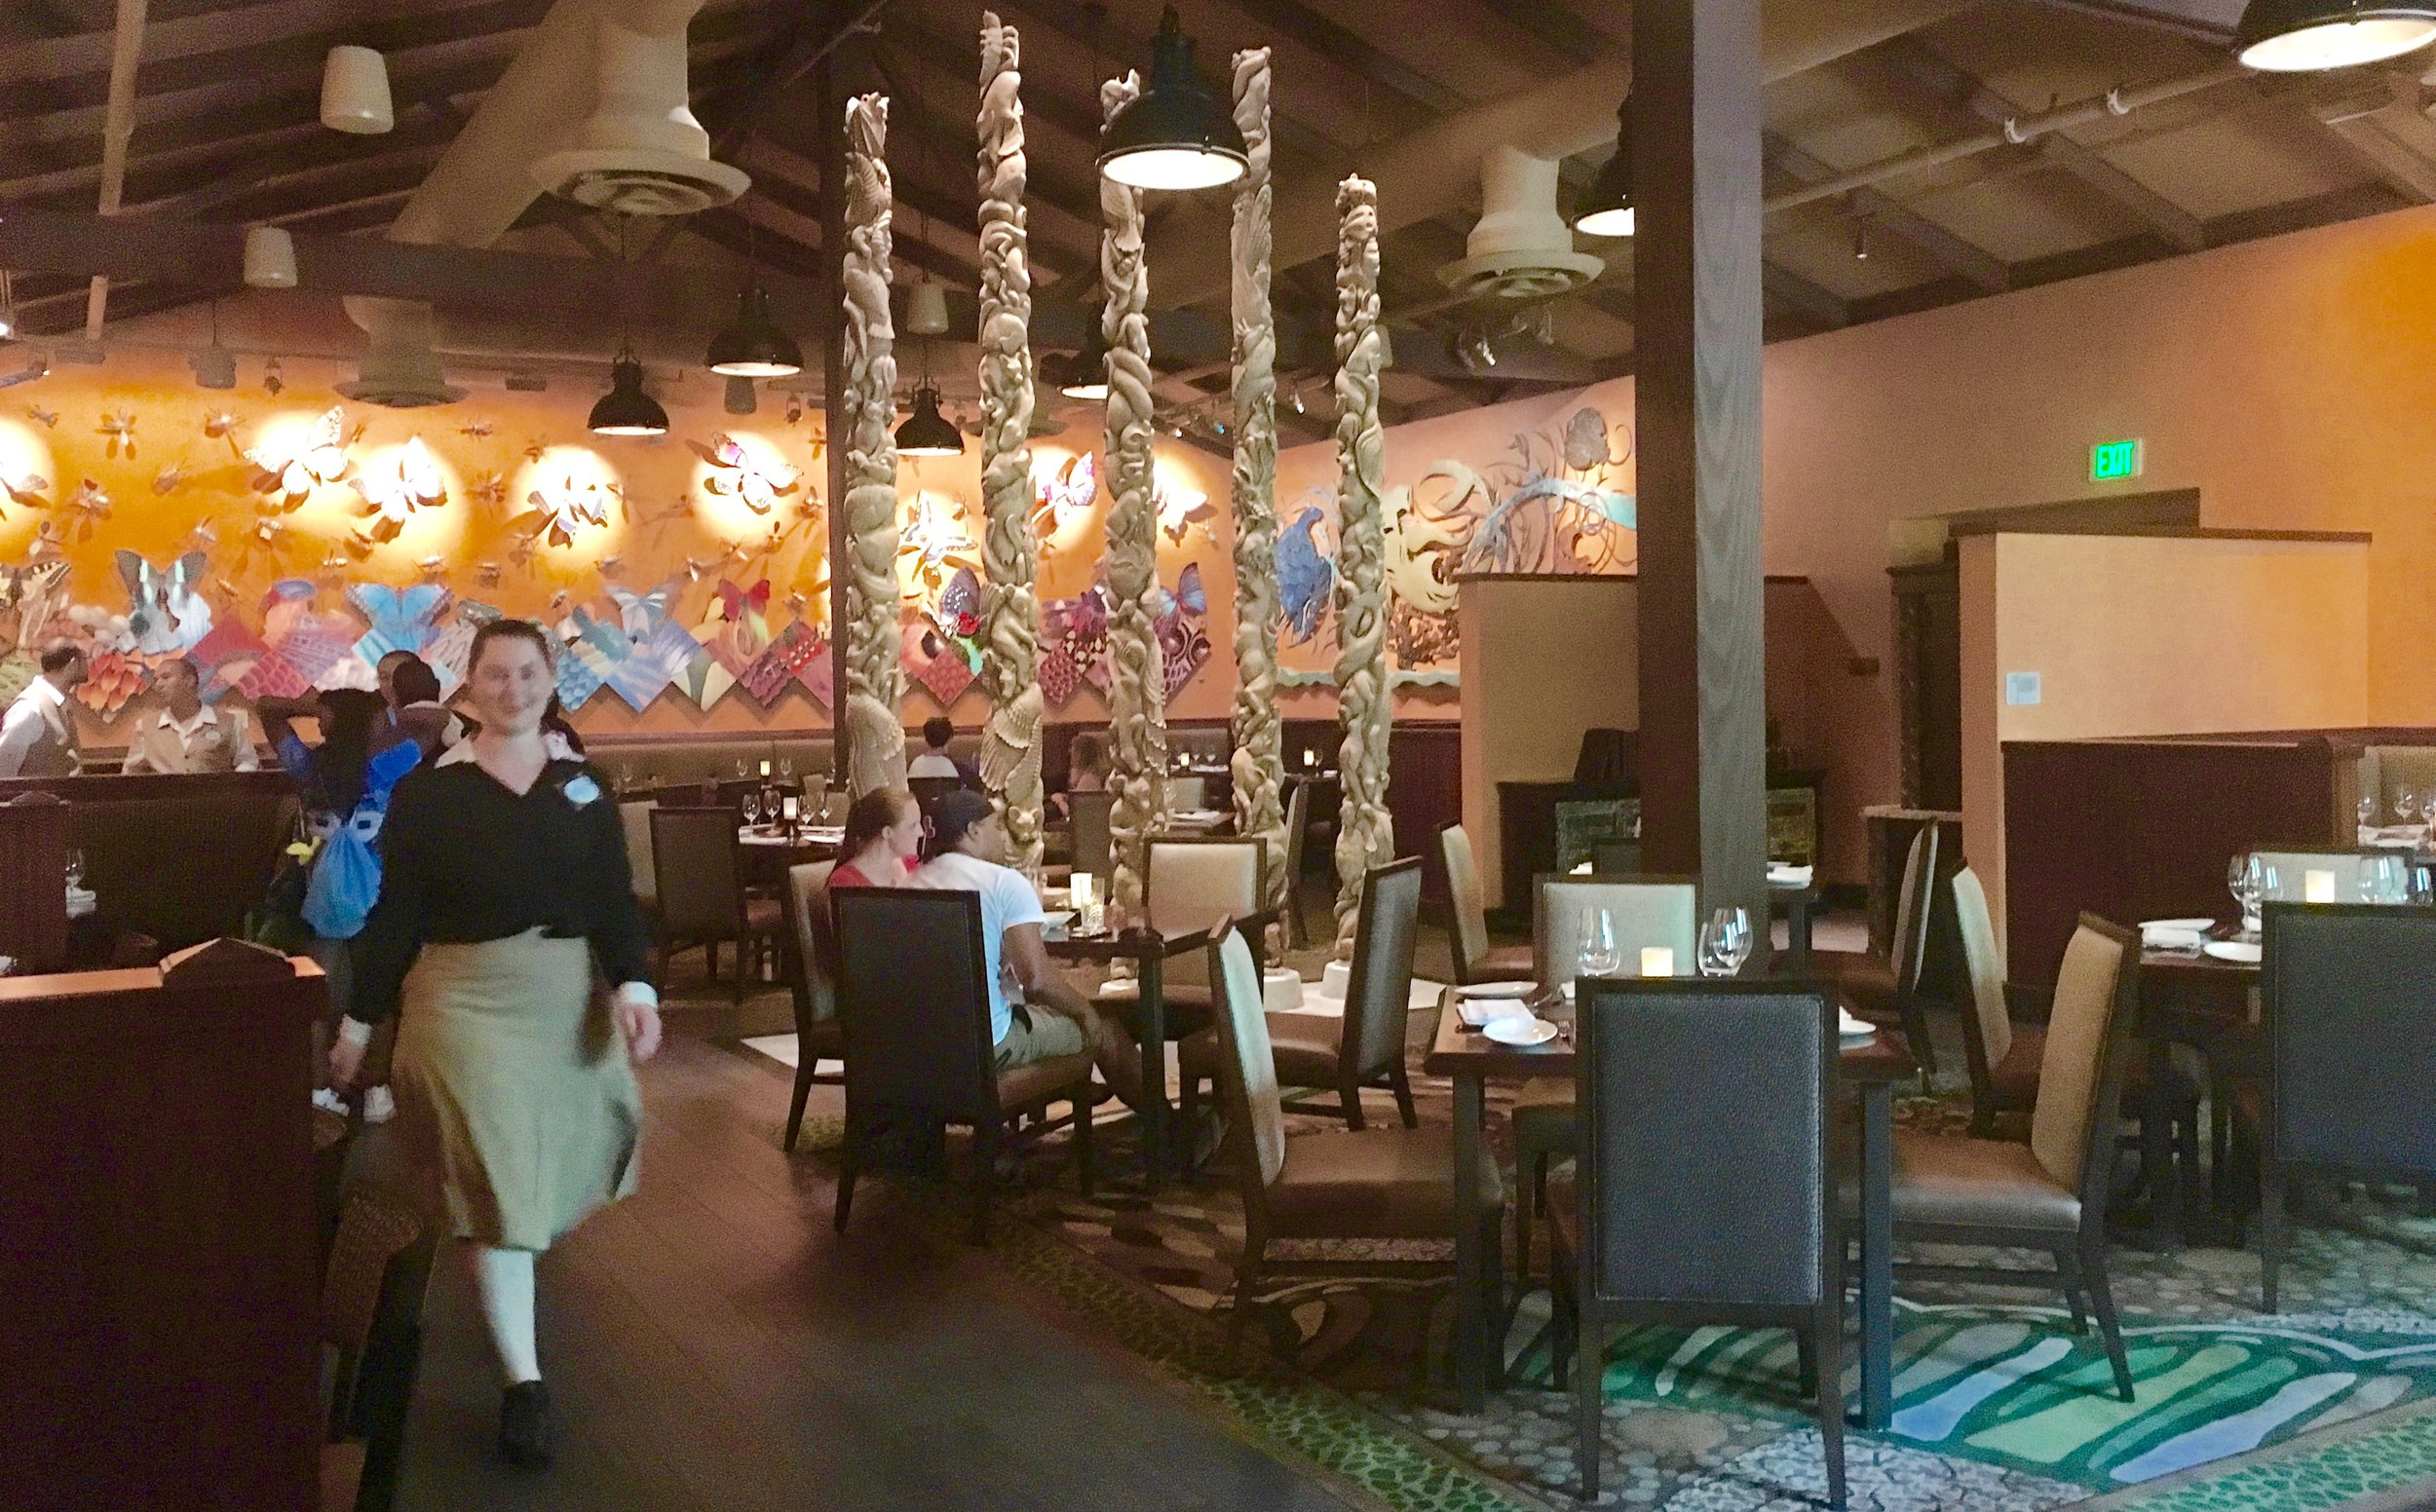 This Tiffins dining room has hand-carved totem poles from Bali in the center